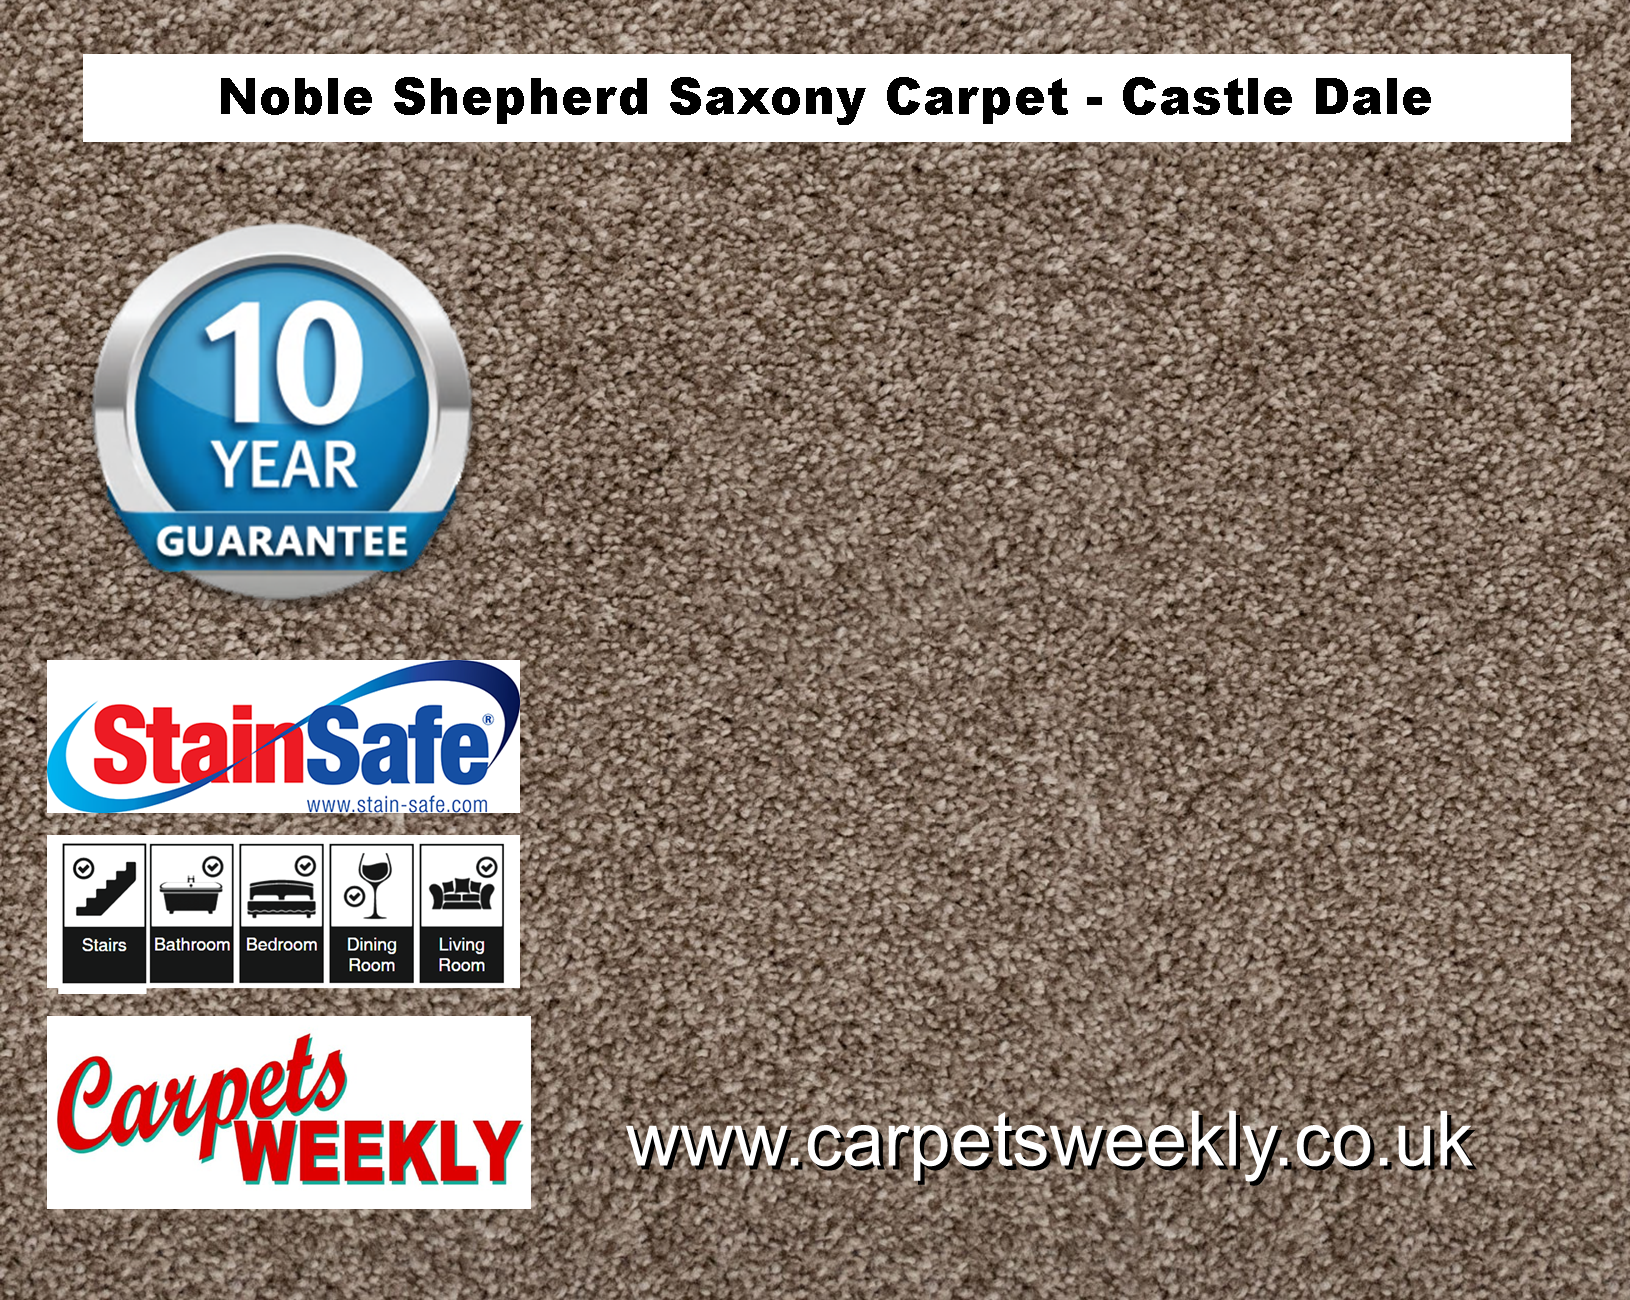 Noble Shepherd Saxony Carpet from Carpets Weekly Castle Dale (825)